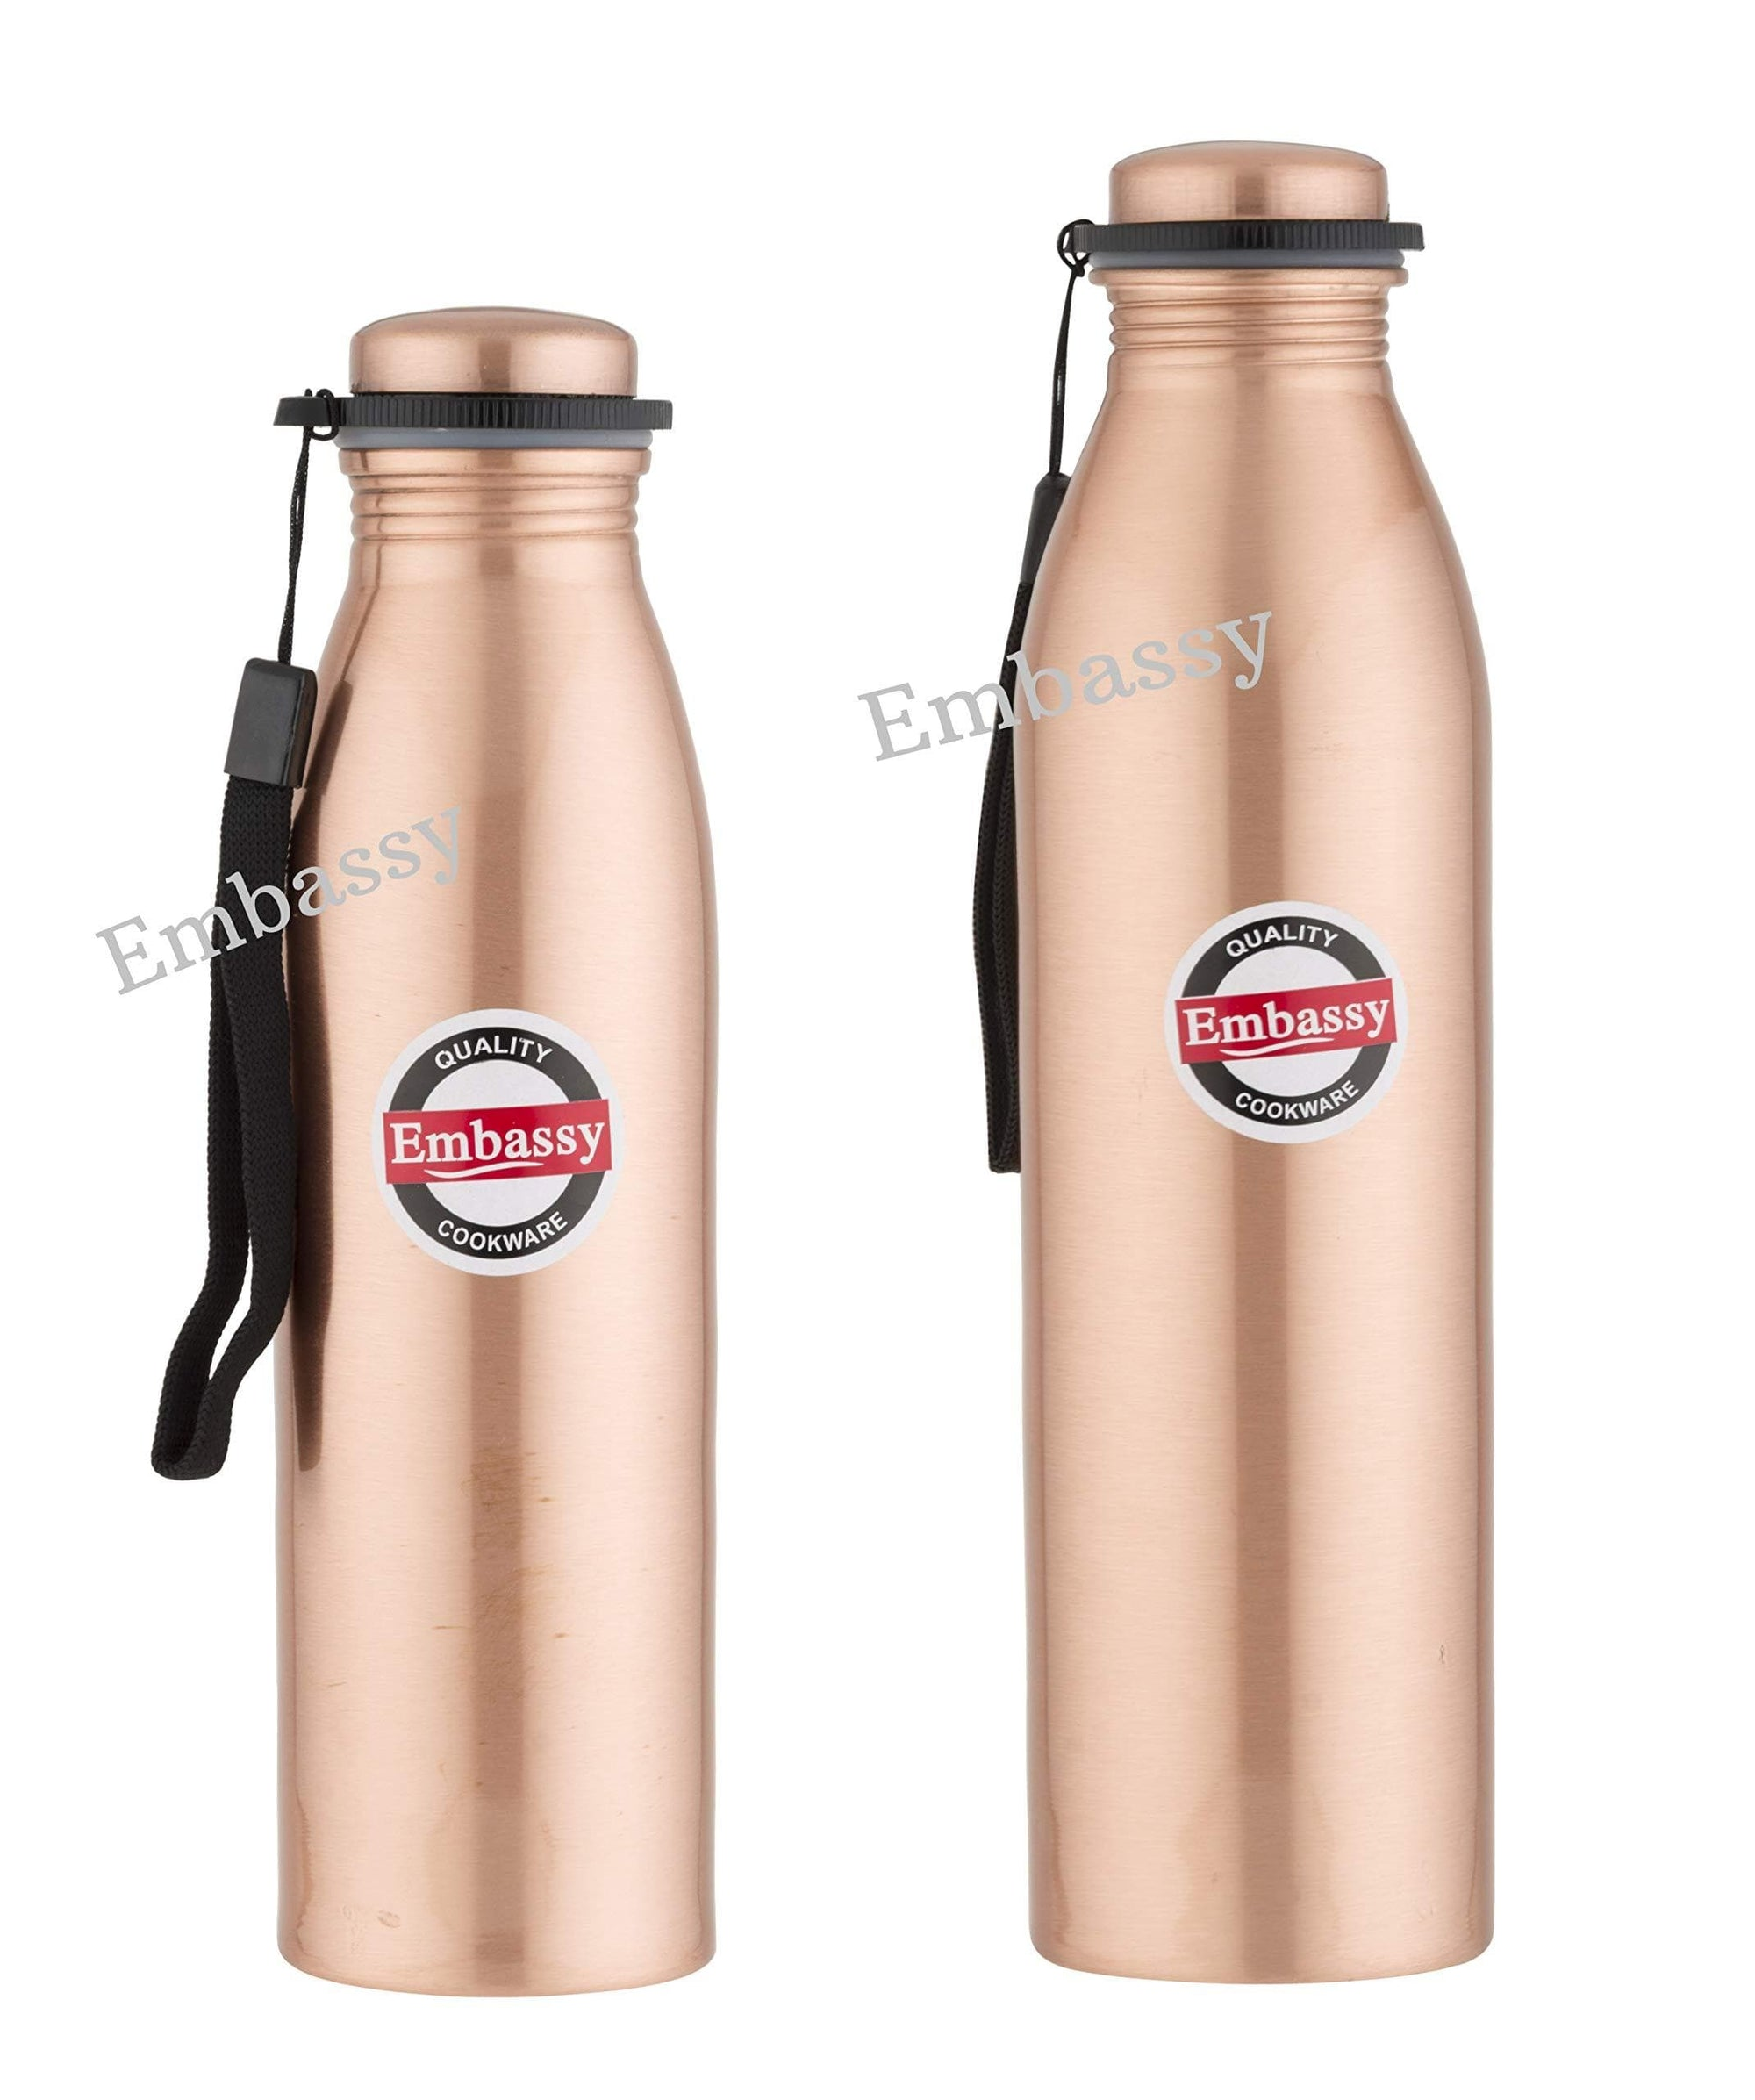 Embassy Premium Copper Water Bottle, Plain, Set of 2, 600 ml and 1000 ml - Leak-Proof, Jointless and Pure Copper - KITCHEN MART